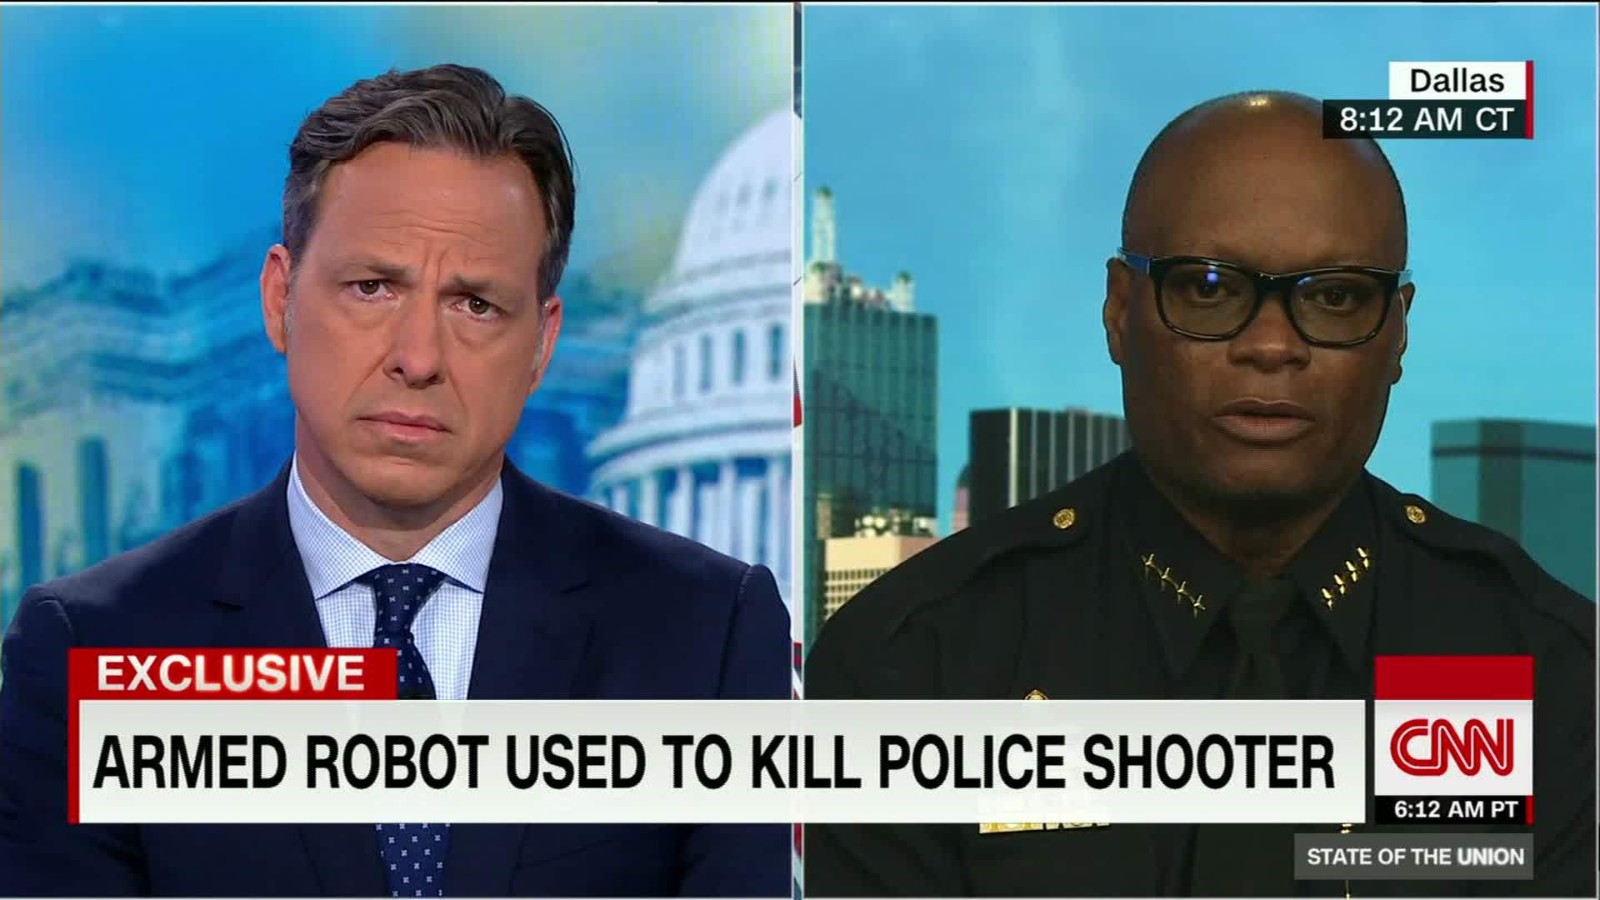 Dallas Police chief: Bomb robot saved lives